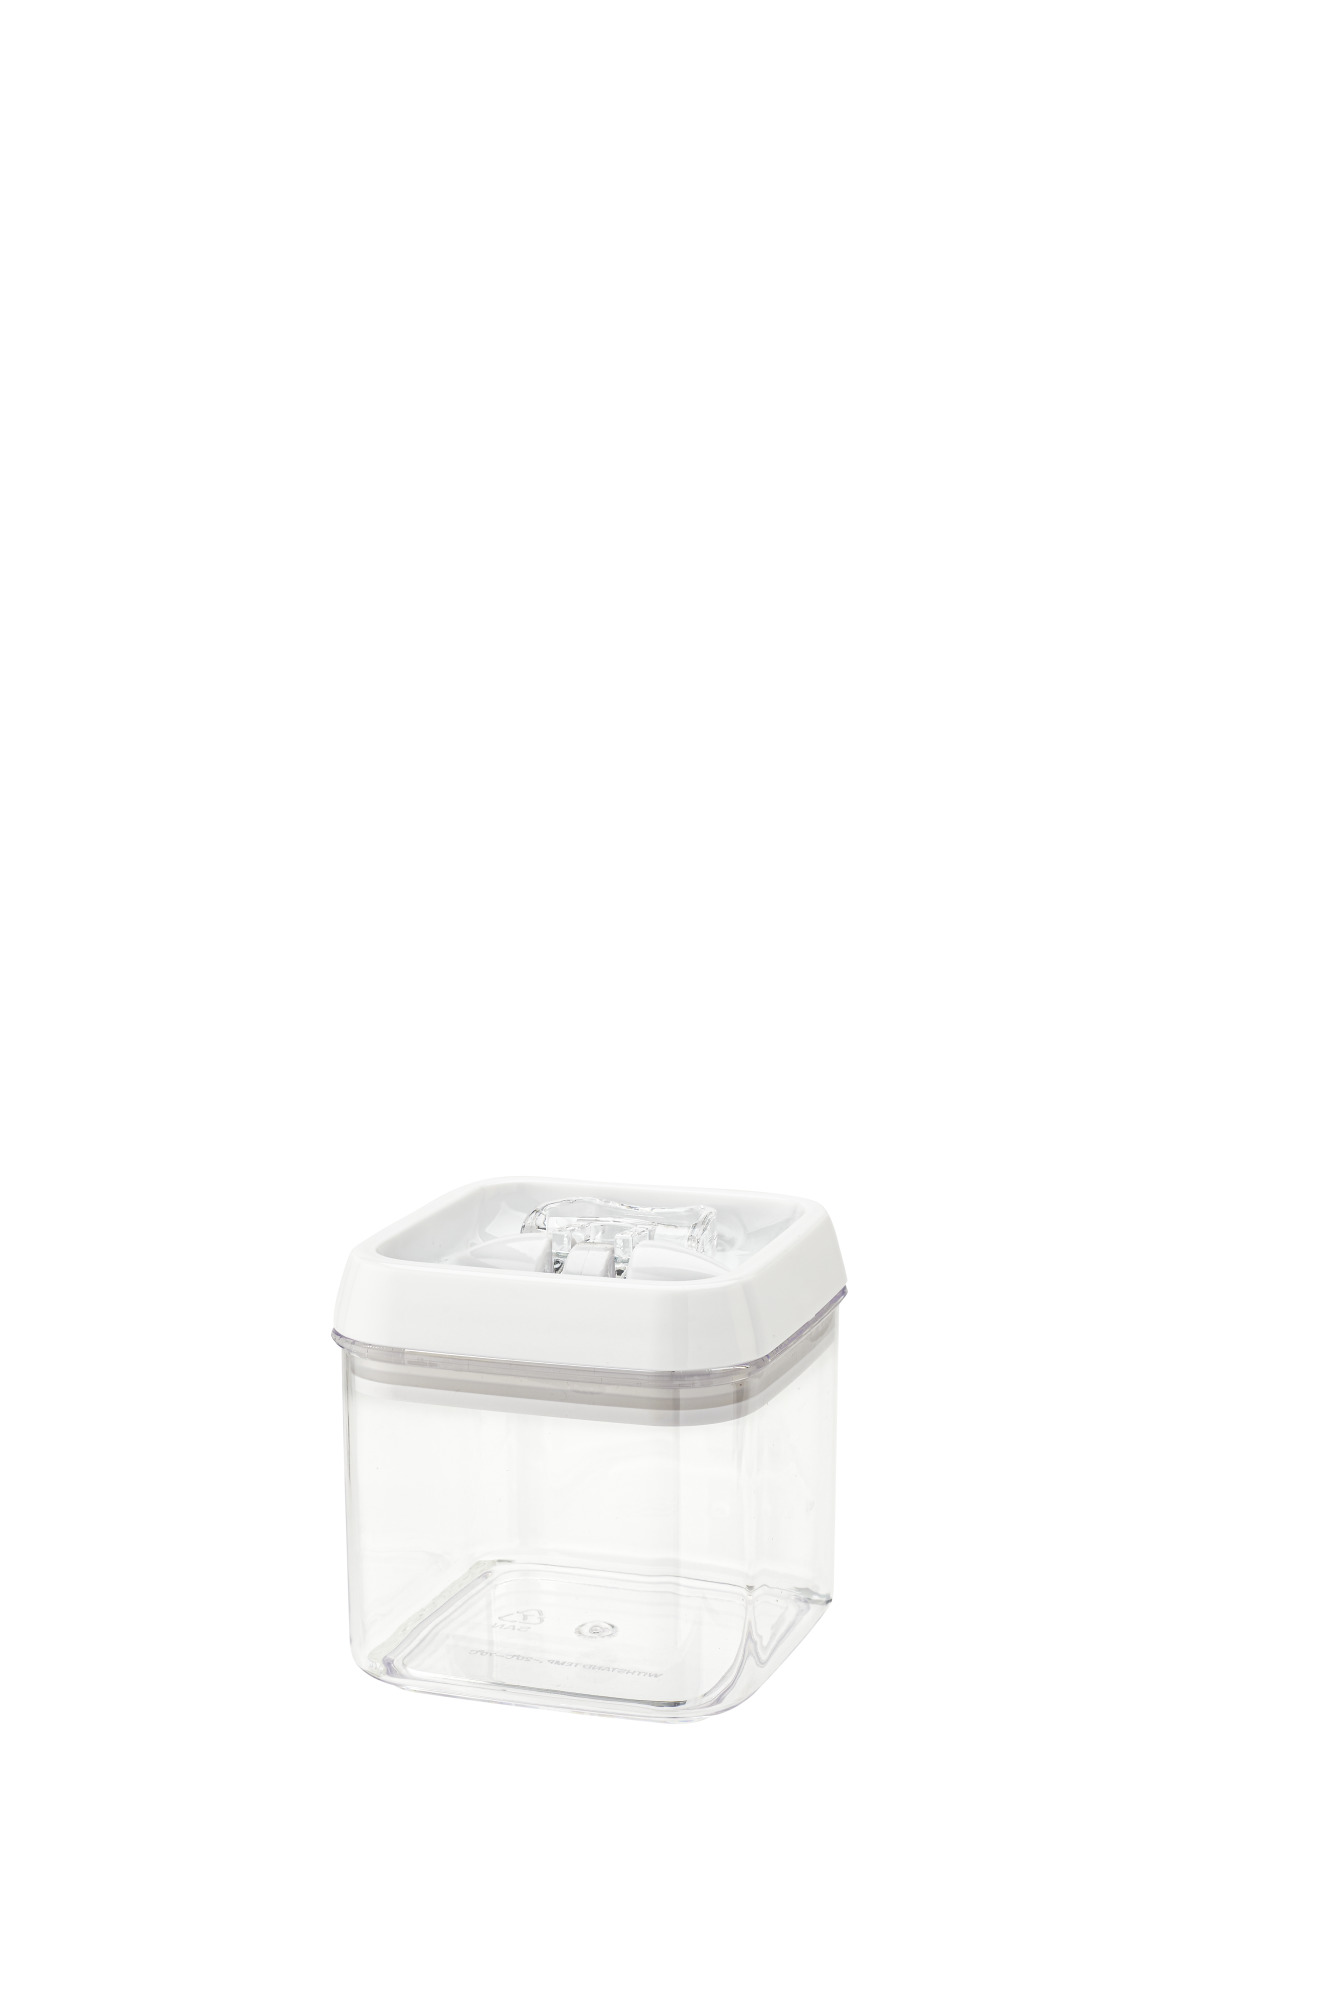 Image of co-series-plastic-containers